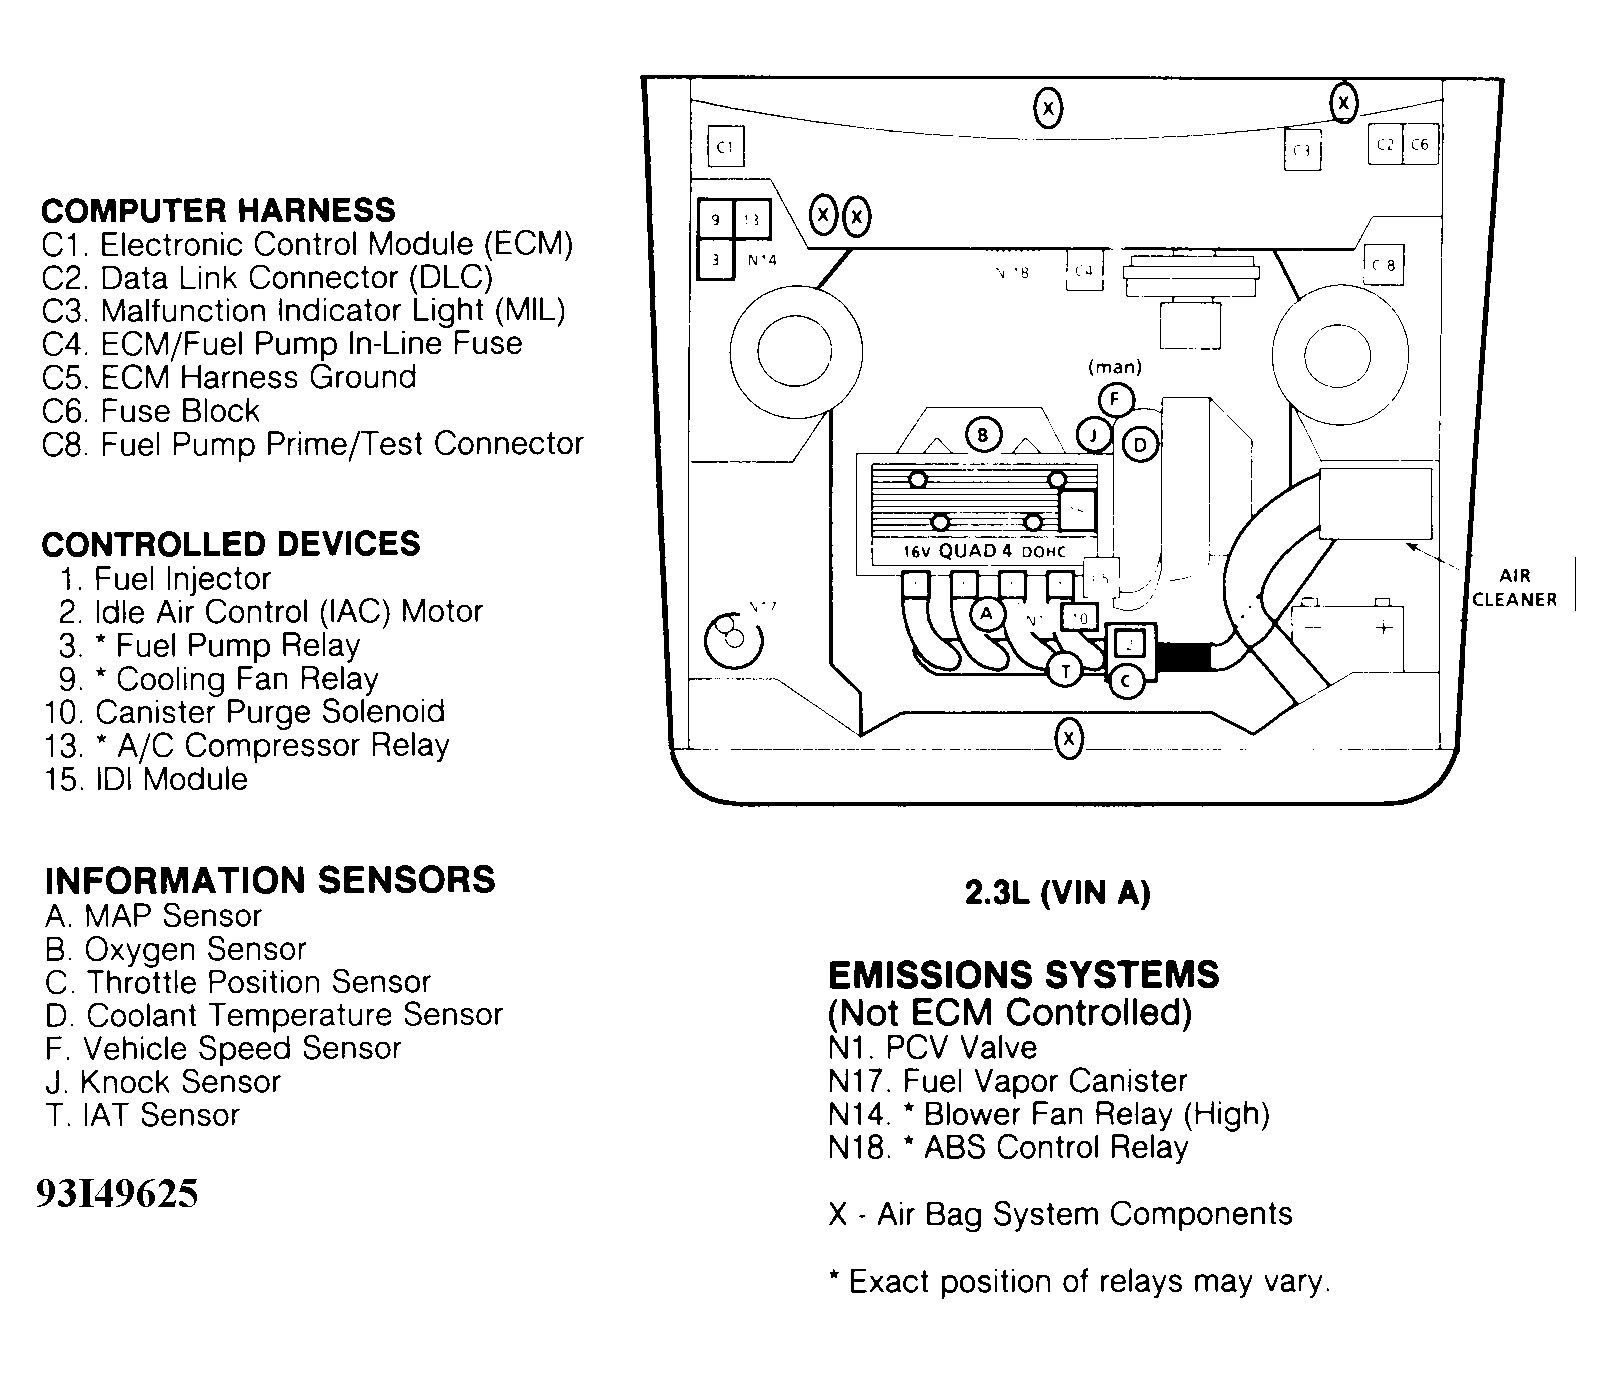 hight resolution of 1996 chevy corsica wiring diagram bull wiring diagram for free